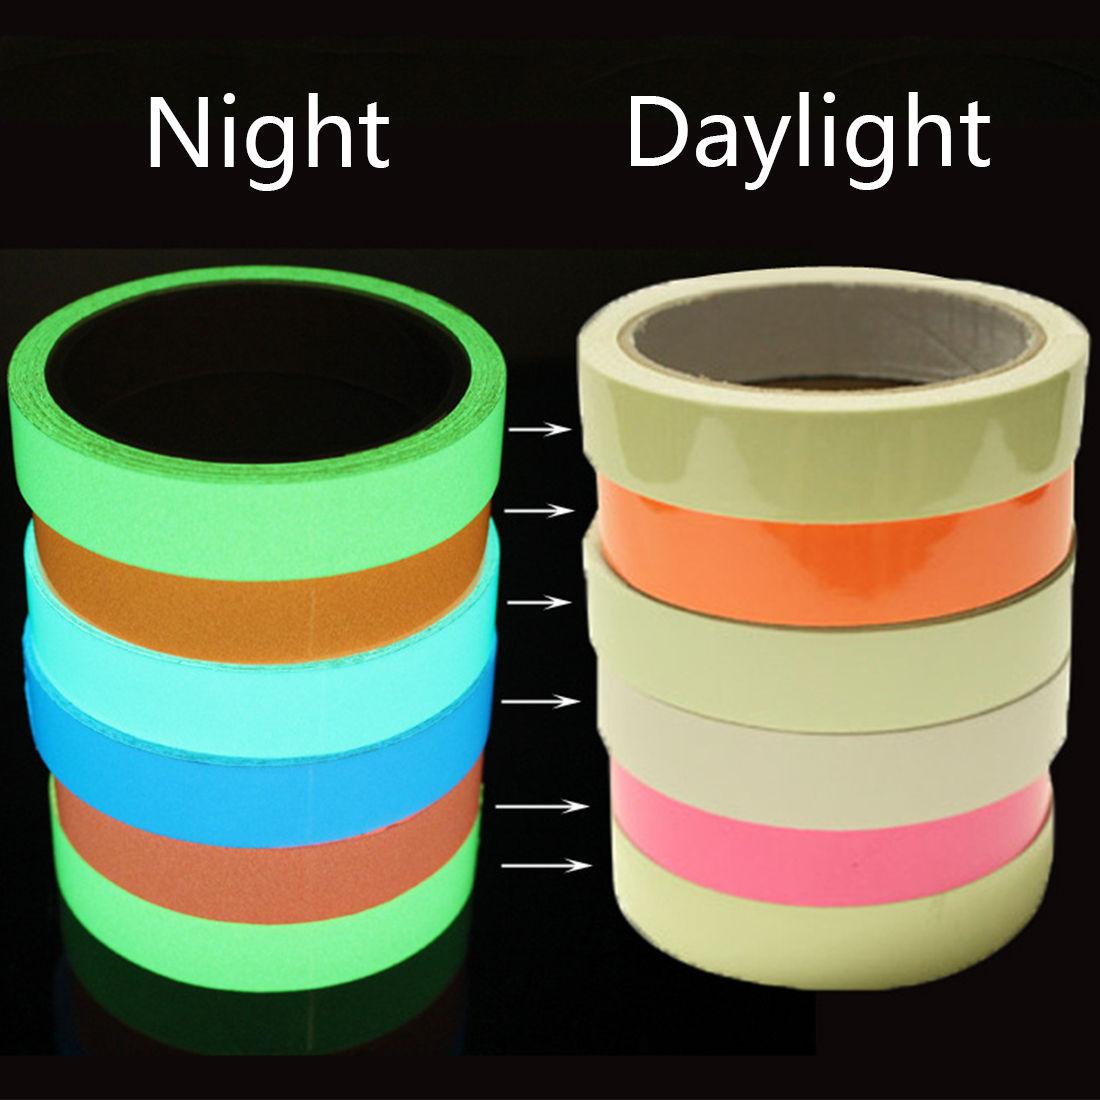 5cm*3m Safety Mark Reflective Tape Stickers Car-styling Self Adhesive Warning Tape Automobiles Motorcycle Reflective Film Promoting Health And Curing Diseases Reflective Material